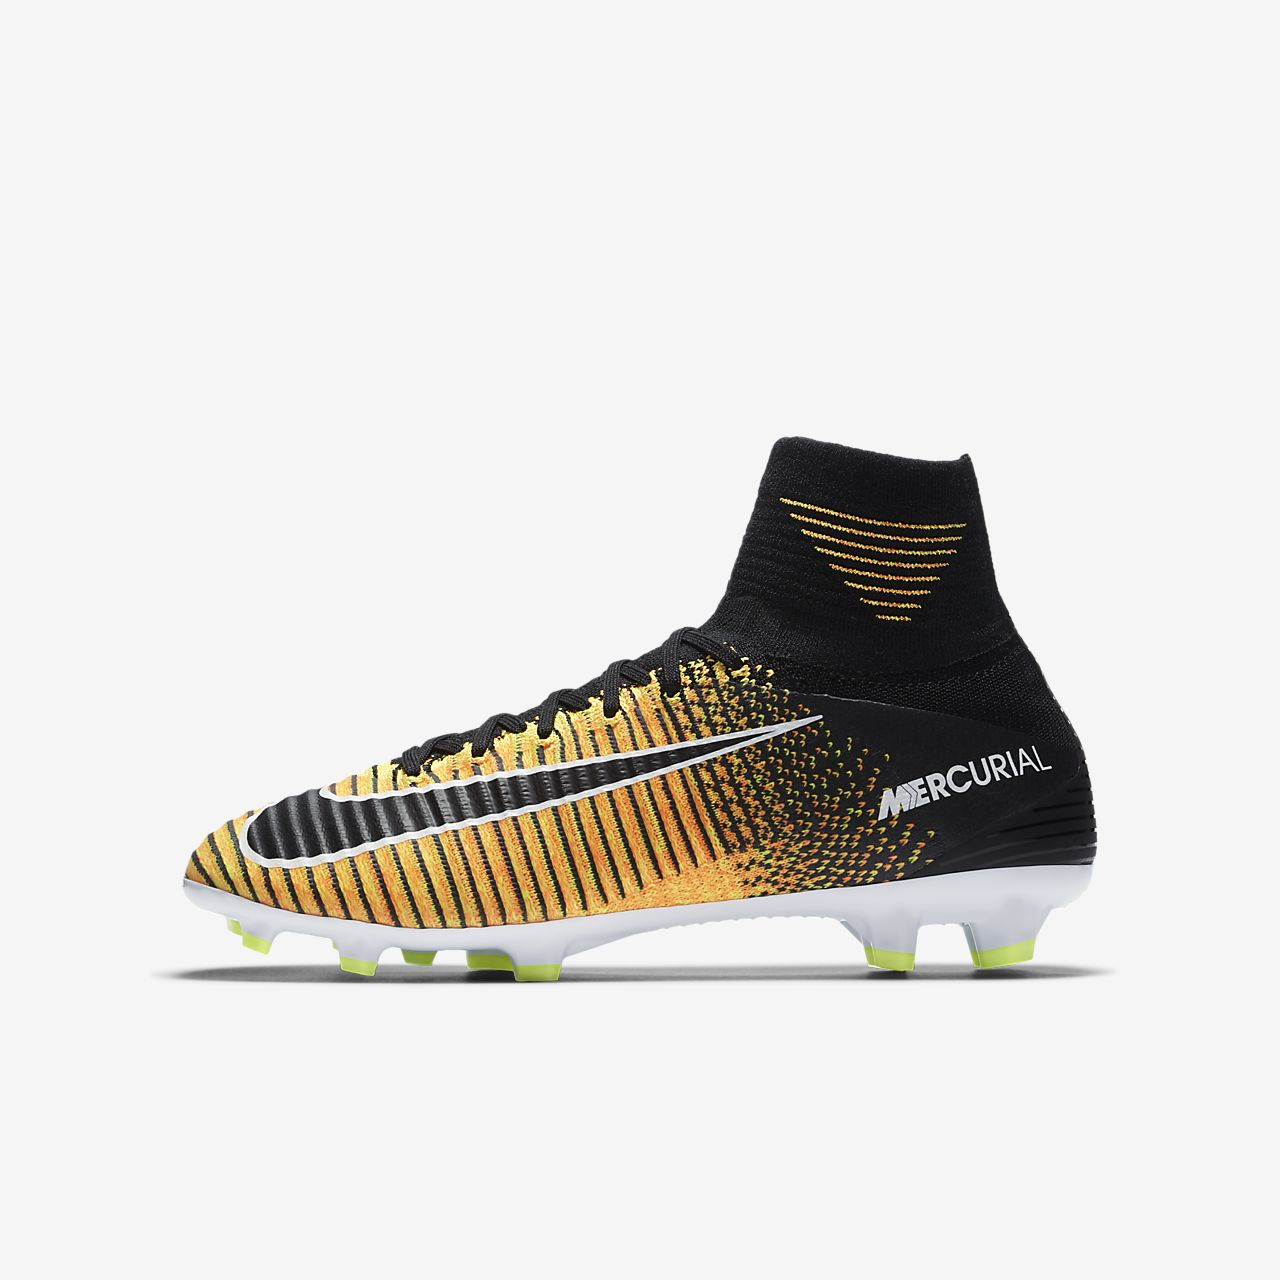 54d3f010355 spain nike mercurial superfly leather ag r firm ground soccer cleats ...